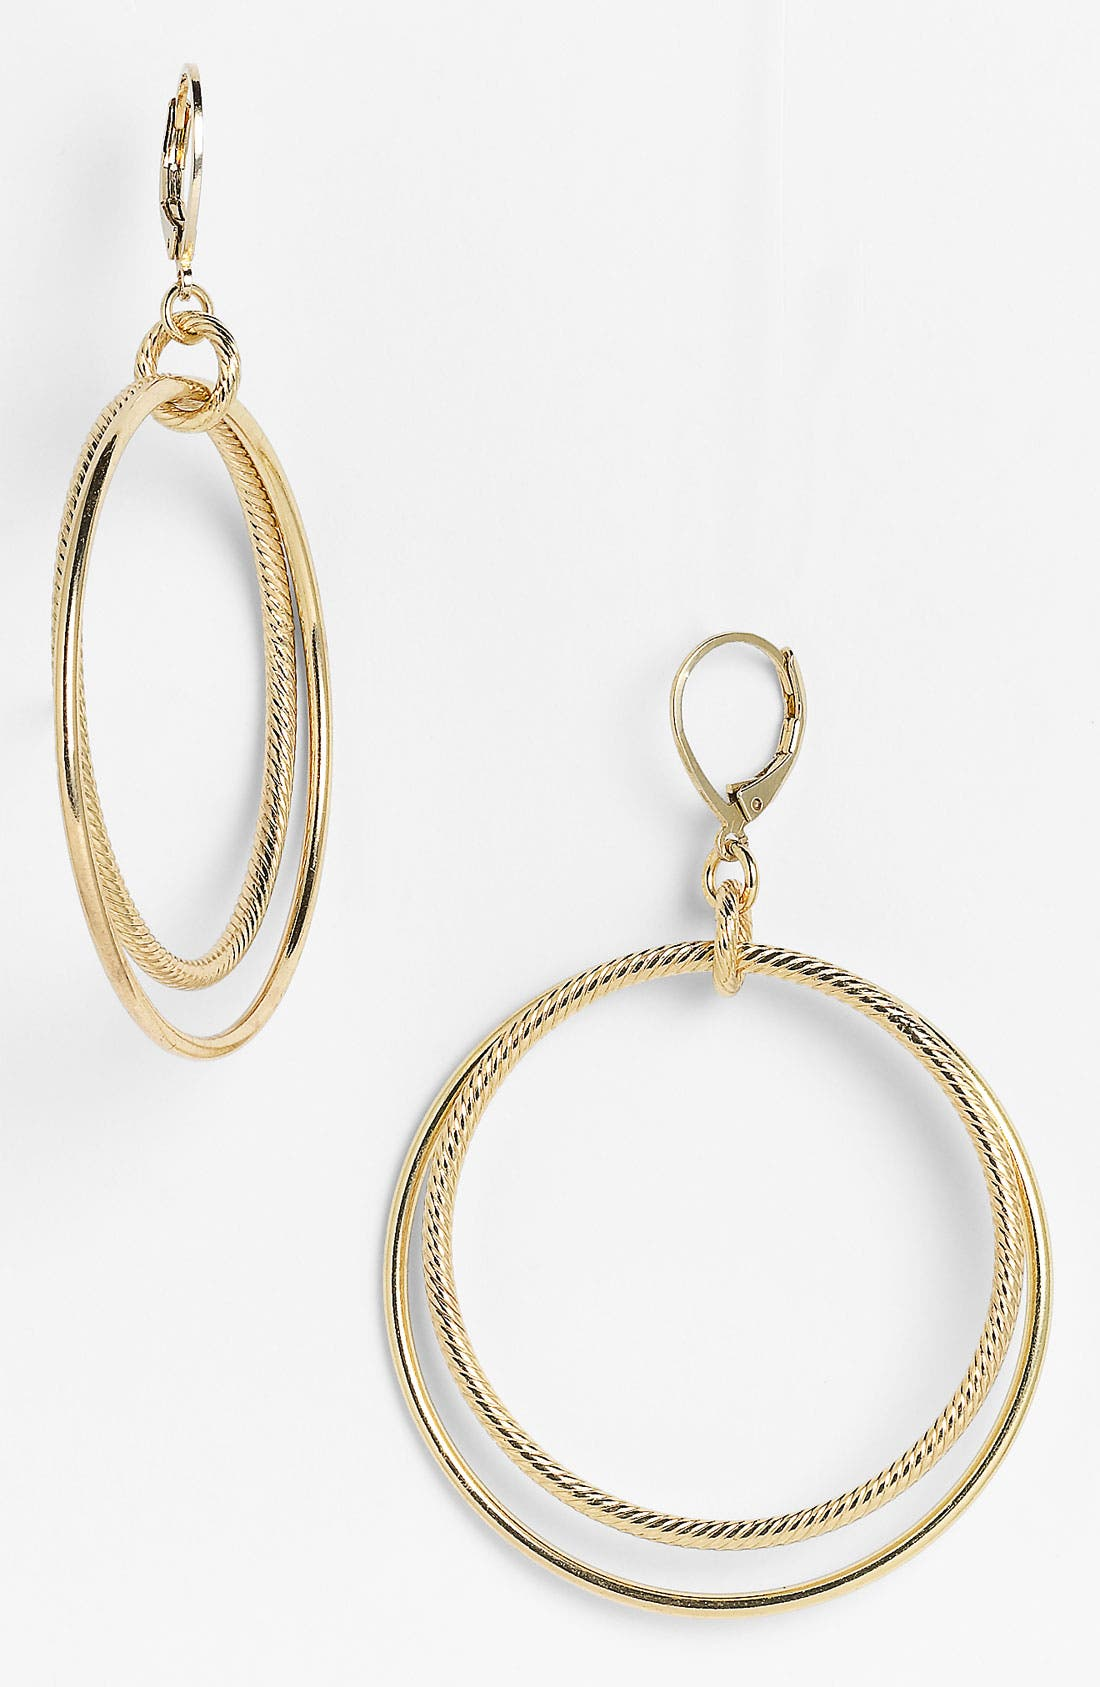 Main Image - Nordstrom Cable Double Frontal Hoop Earrings